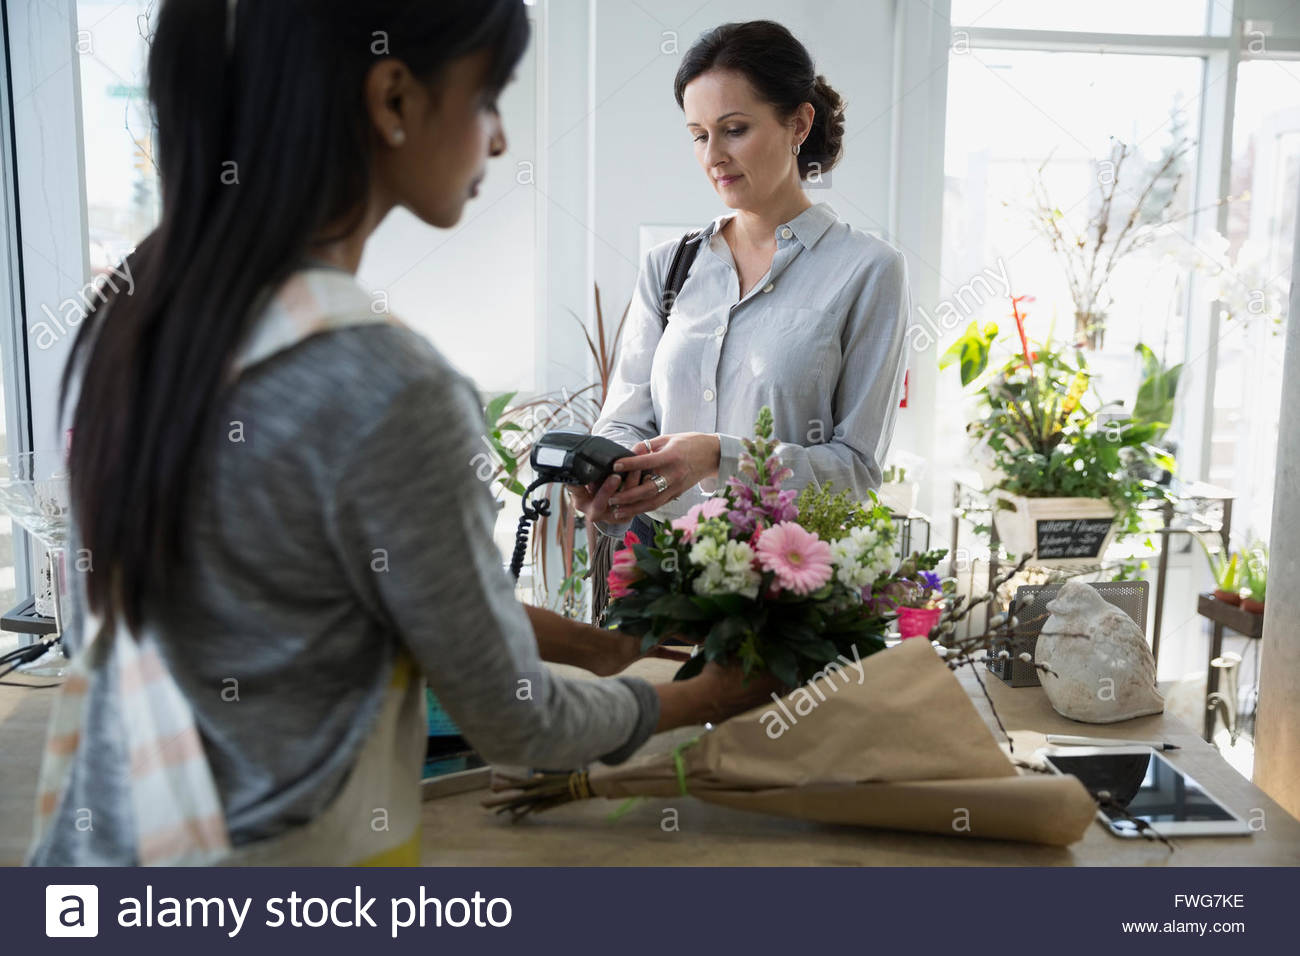 Woman paying with credit card machine flower shop Stock Photo